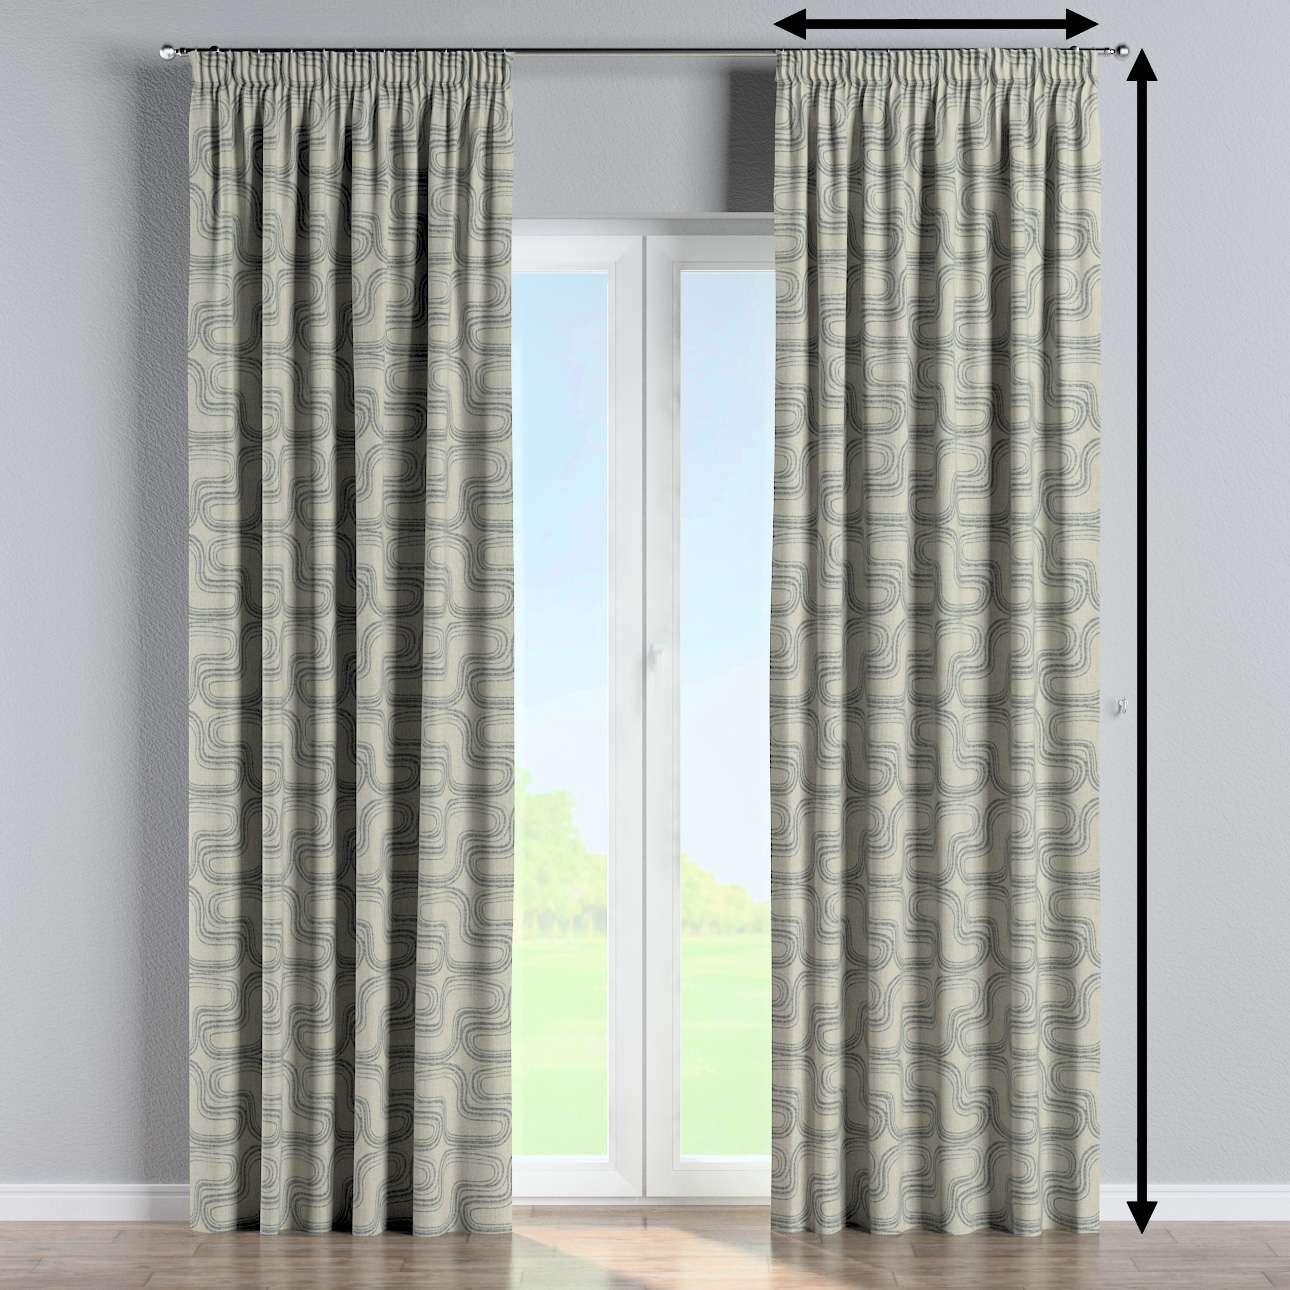 Pencil pleat curtains in collection Comics/Geometrical, fabric: 143-14